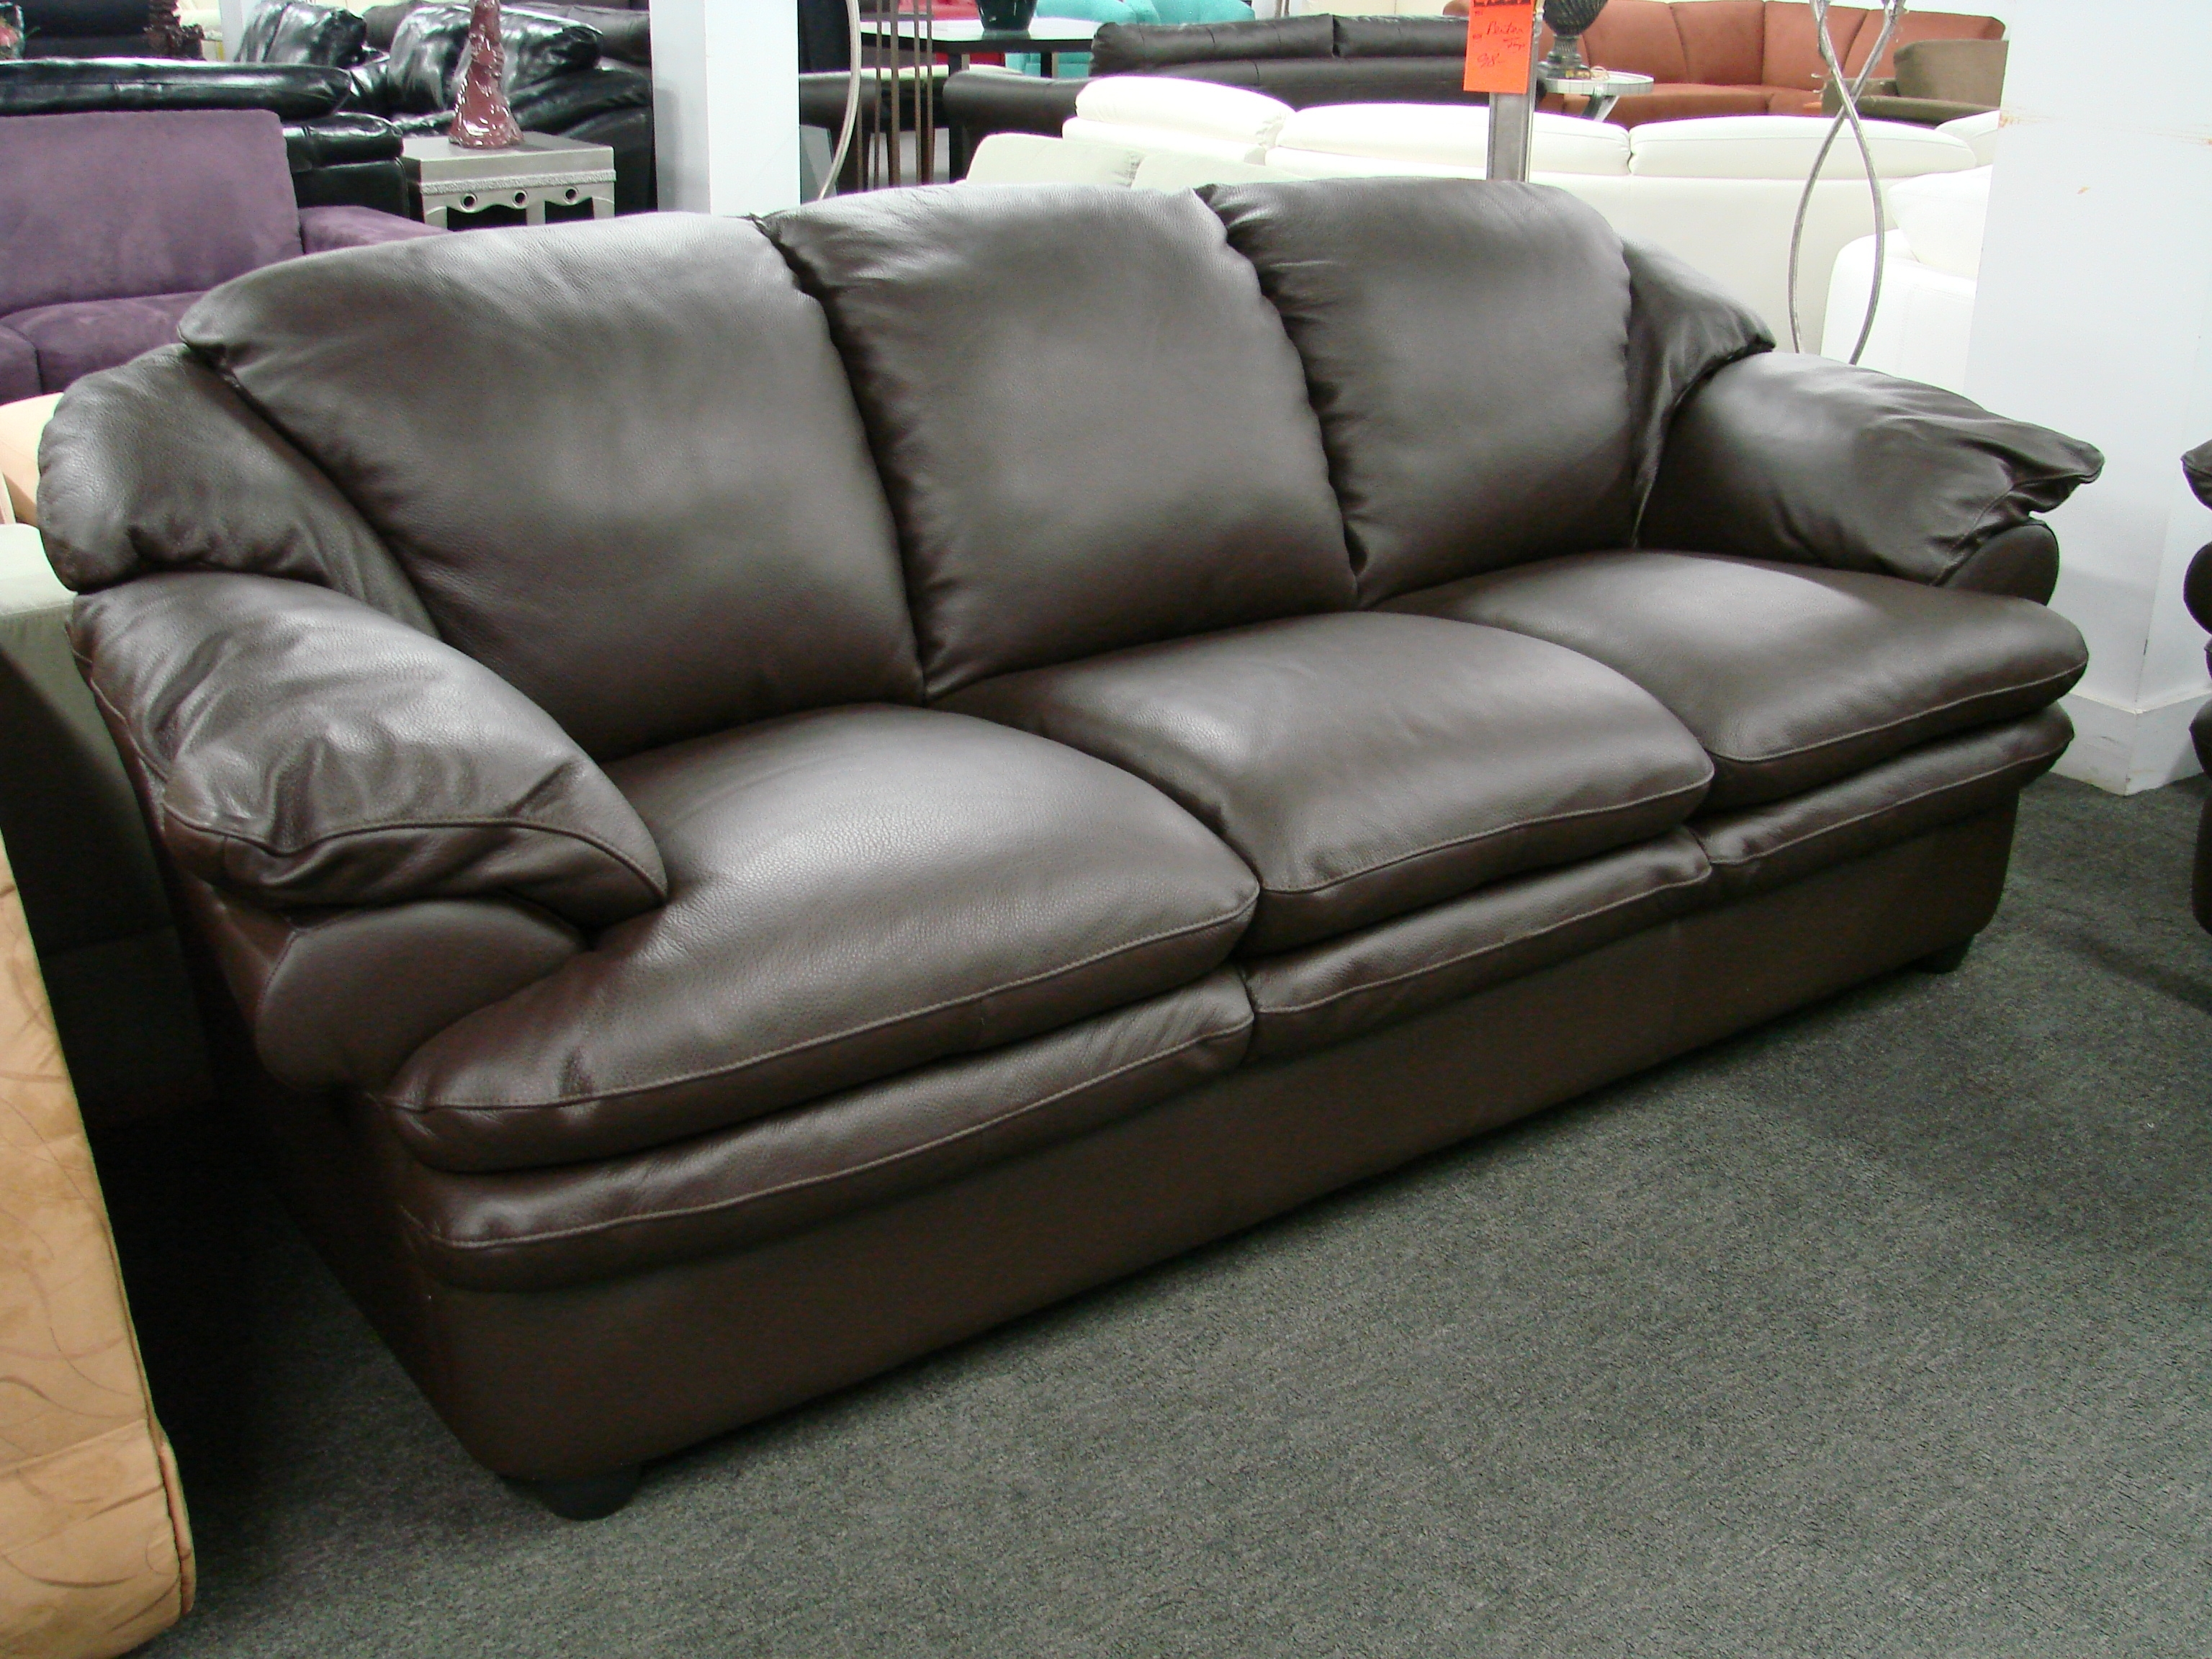 Leather Sectional Sofa With Recliners Sofas Ottawa For Sale Couch with regard to Ottawa Sectional Sofas (Image 5 of 10)